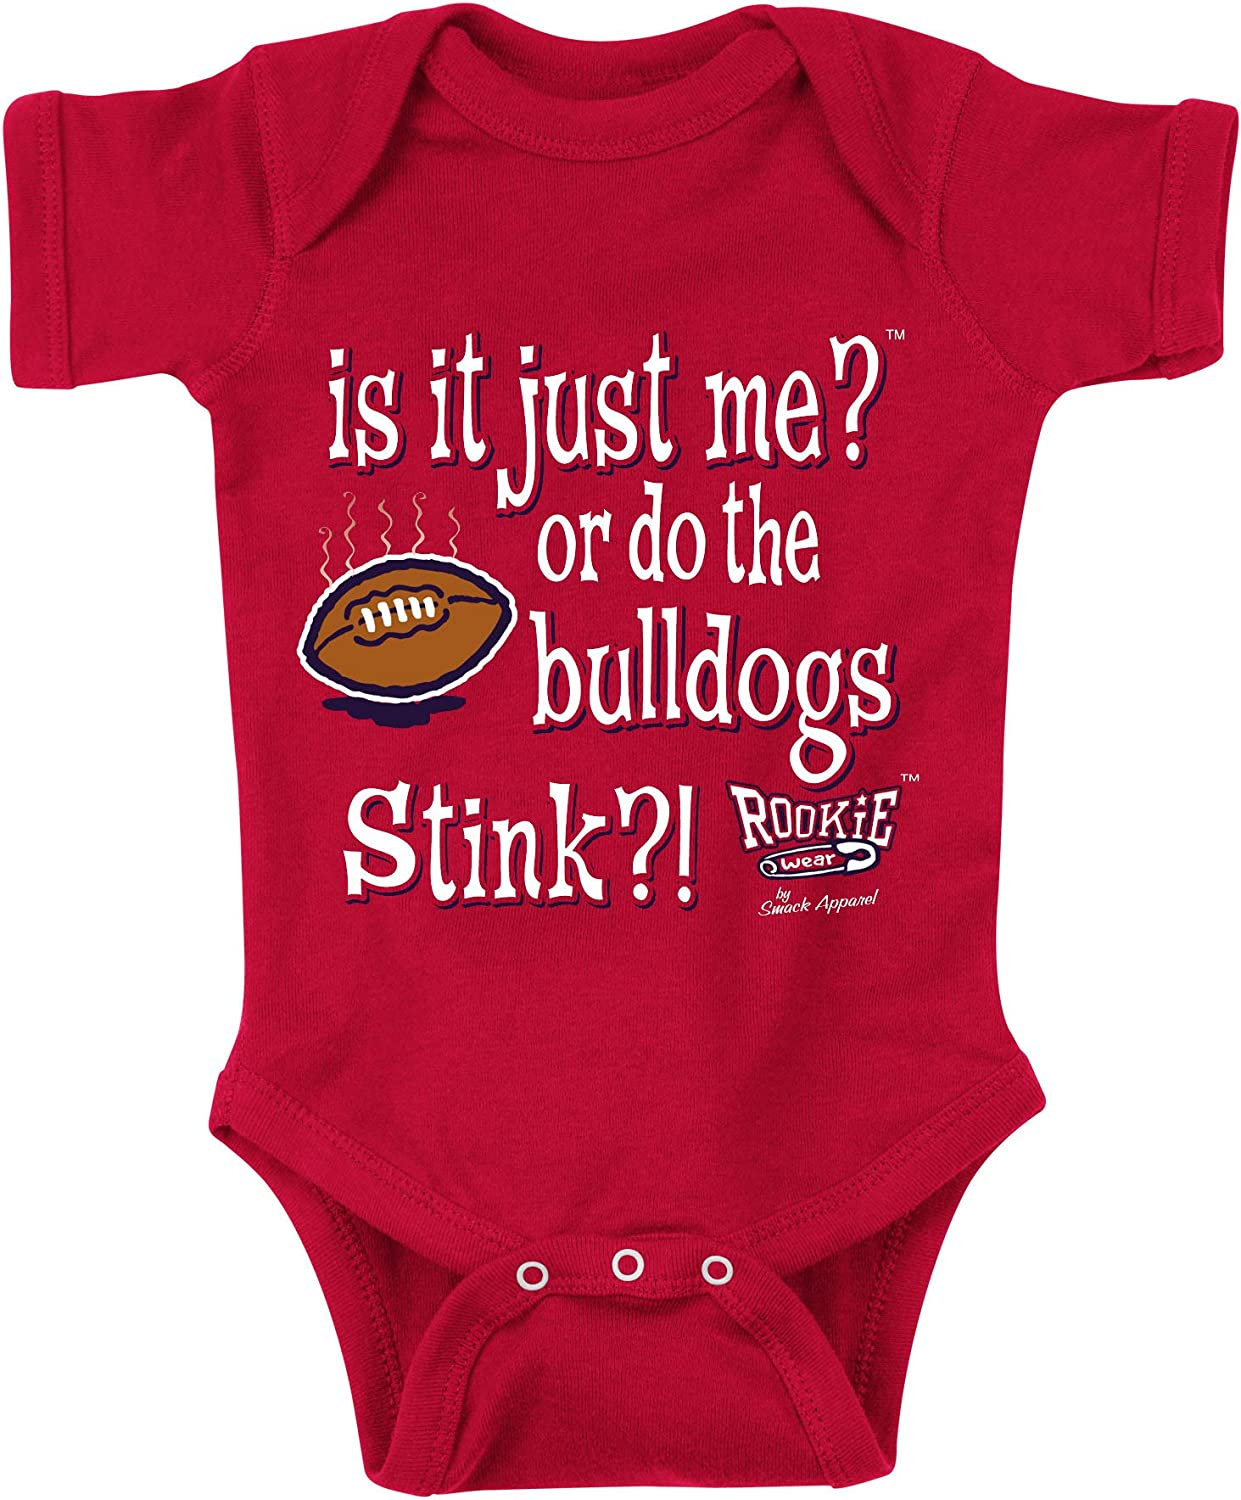 2T-4T NB-18M Smack Apparel San Francisco Giants Fans is It Just Me? Onesie /& Toddler Tee